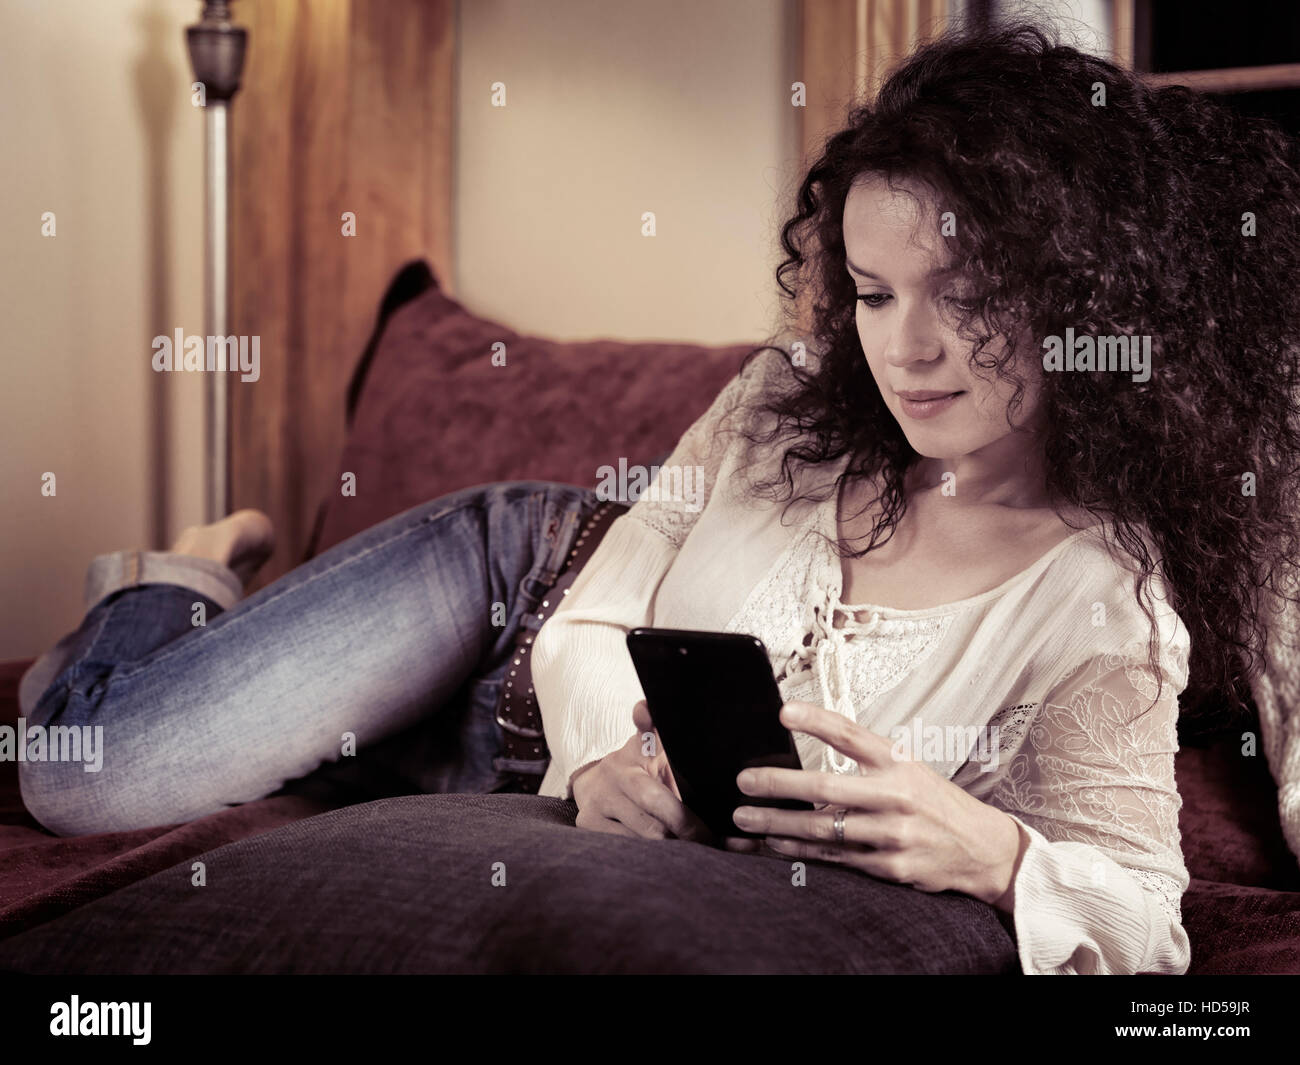 Young woman lying on a sofa at home with Apple iPhone 7 Plus in her hands, reading an e-book - Stock Image